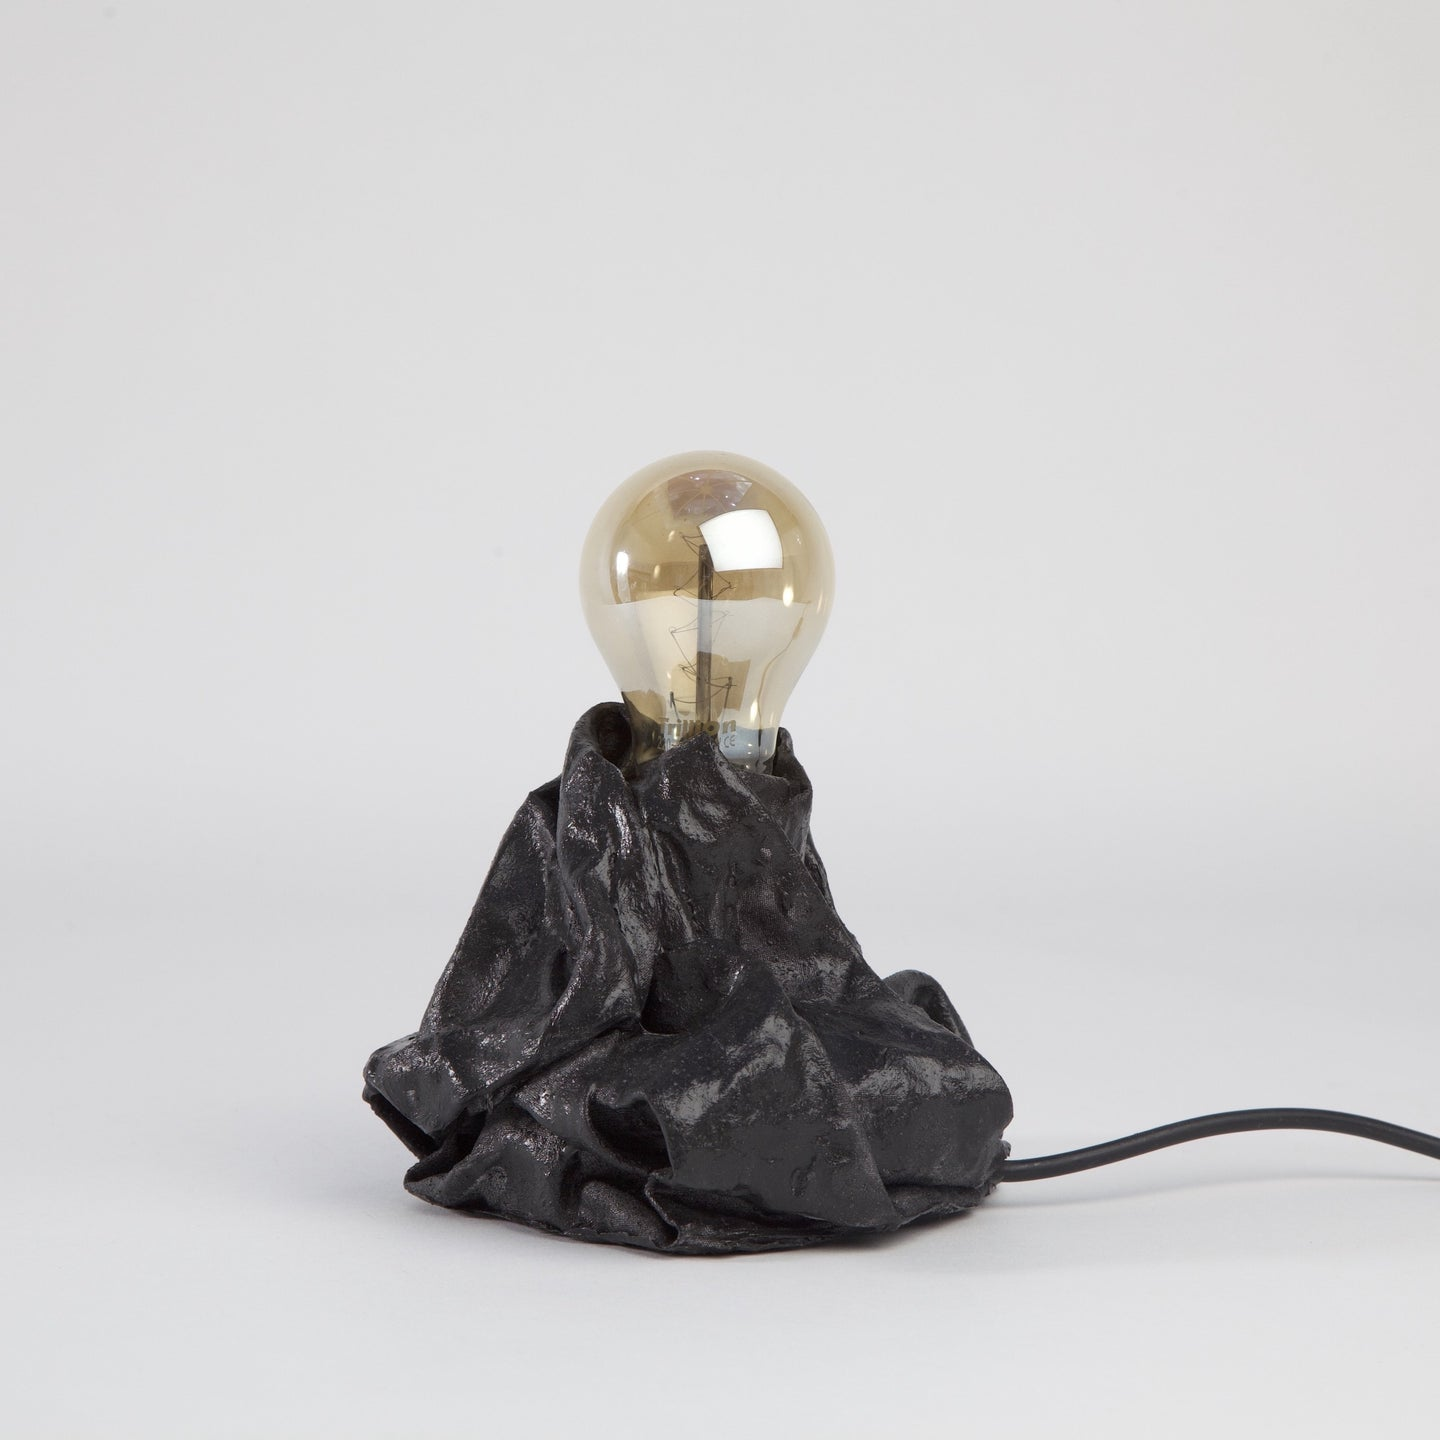 Table Lamp | cellulose-based bioplastic